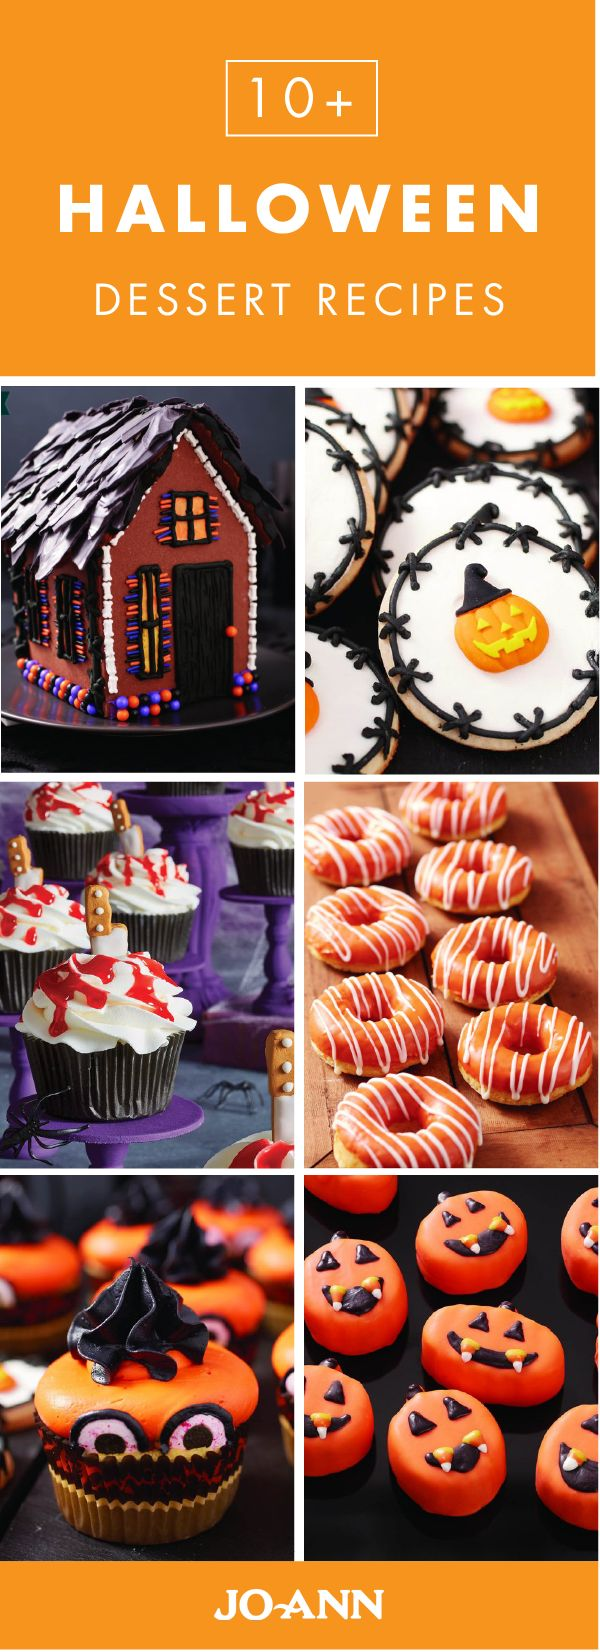 this collection of halloween dessert recipes from jo ann features everything from spooky gingerbread houses and creative cupcakes to traditional pumpkin